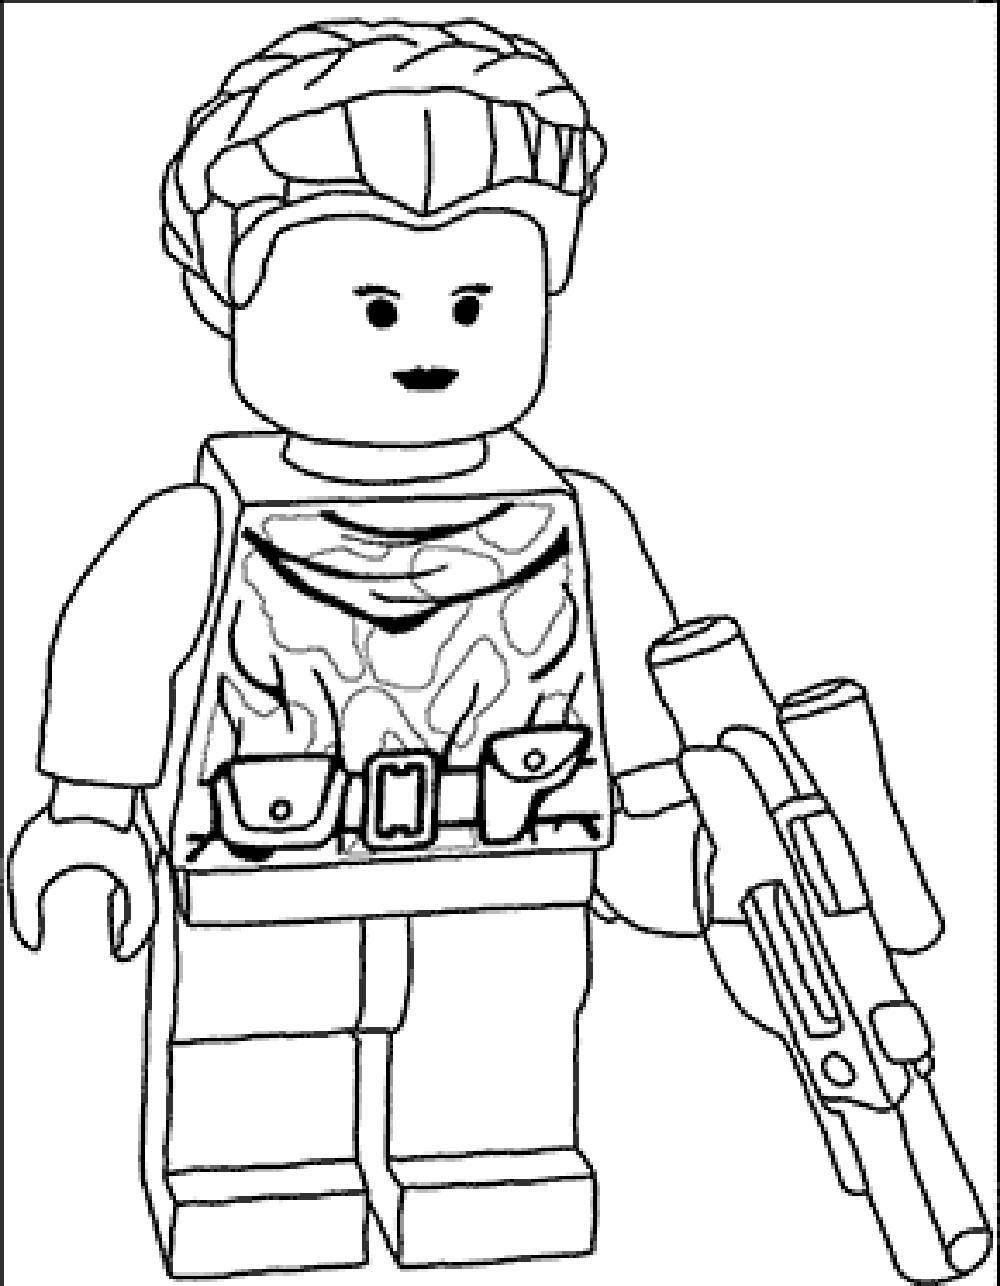 Lego City Coloring Pages Free - Coloring Home